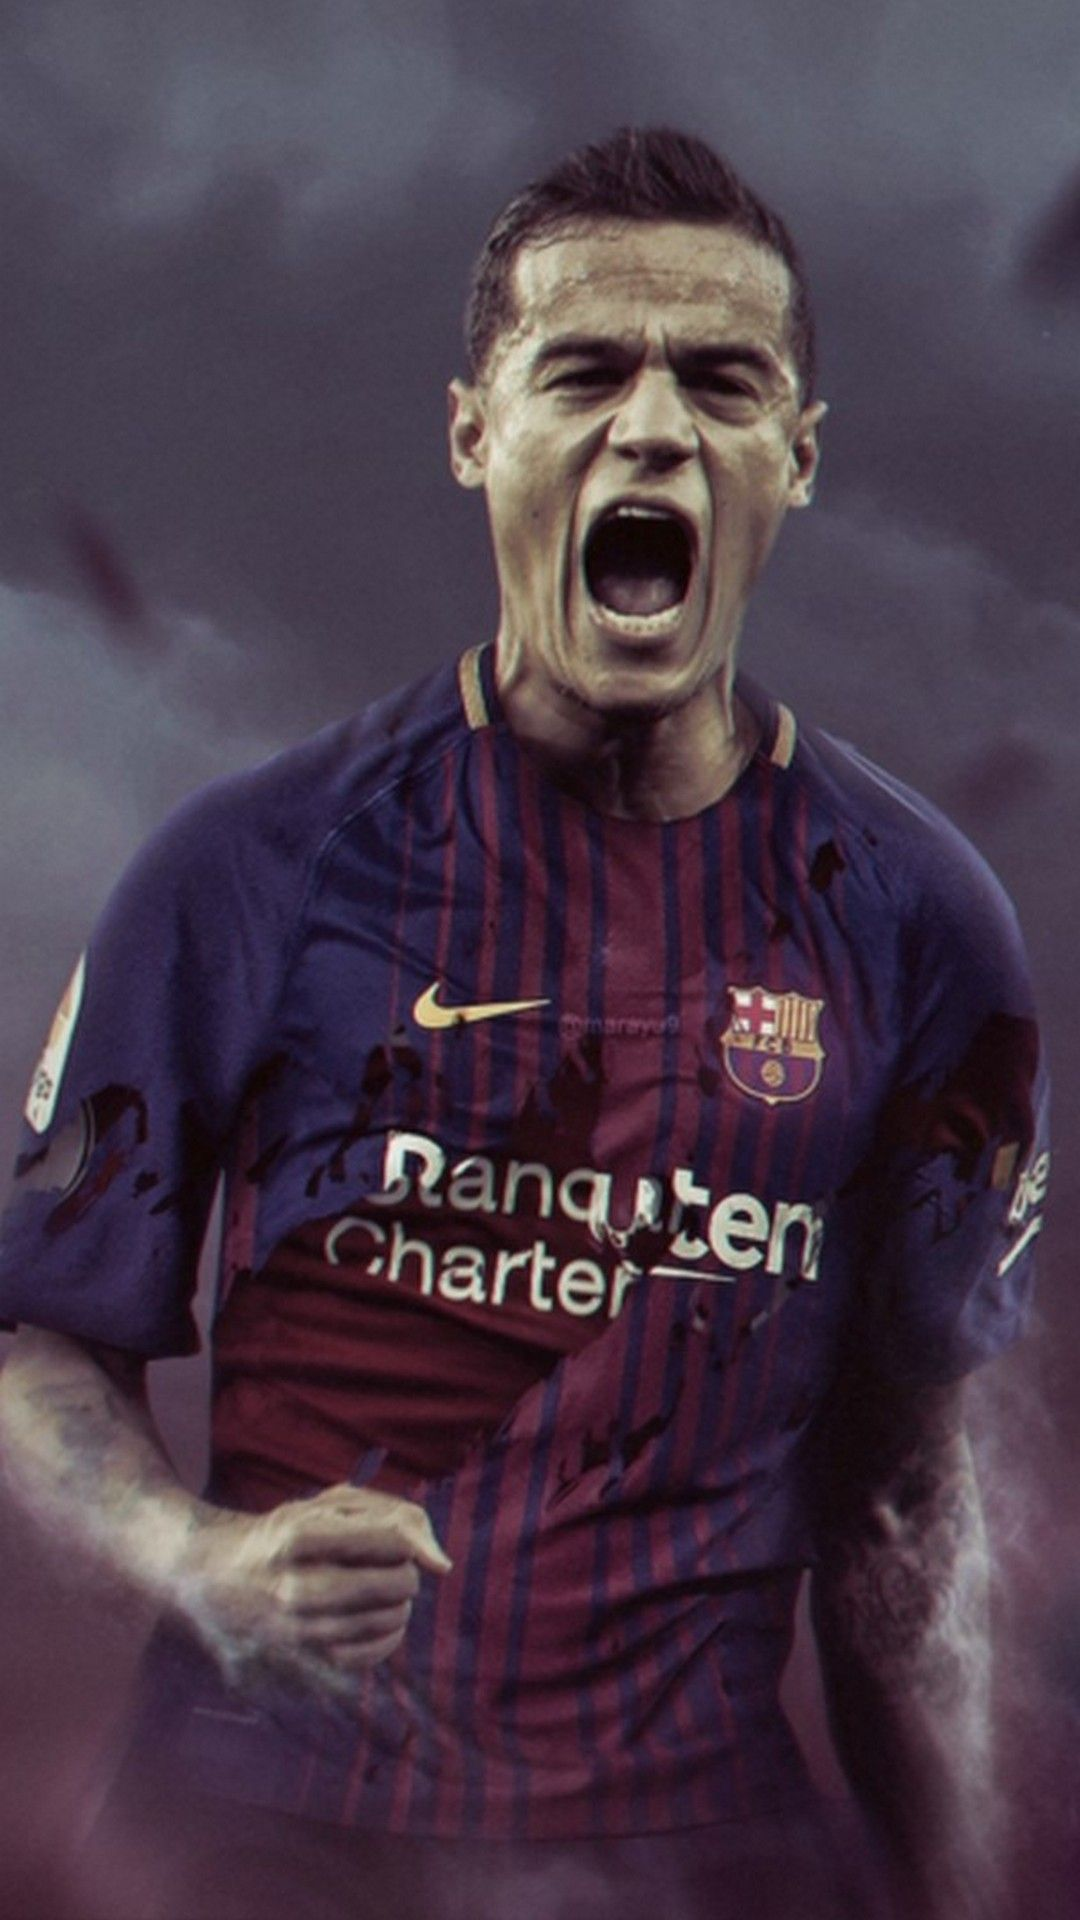 Coutinho Barcelona Wallpaper For iPhone iPhoneWallpapers 1080x1920